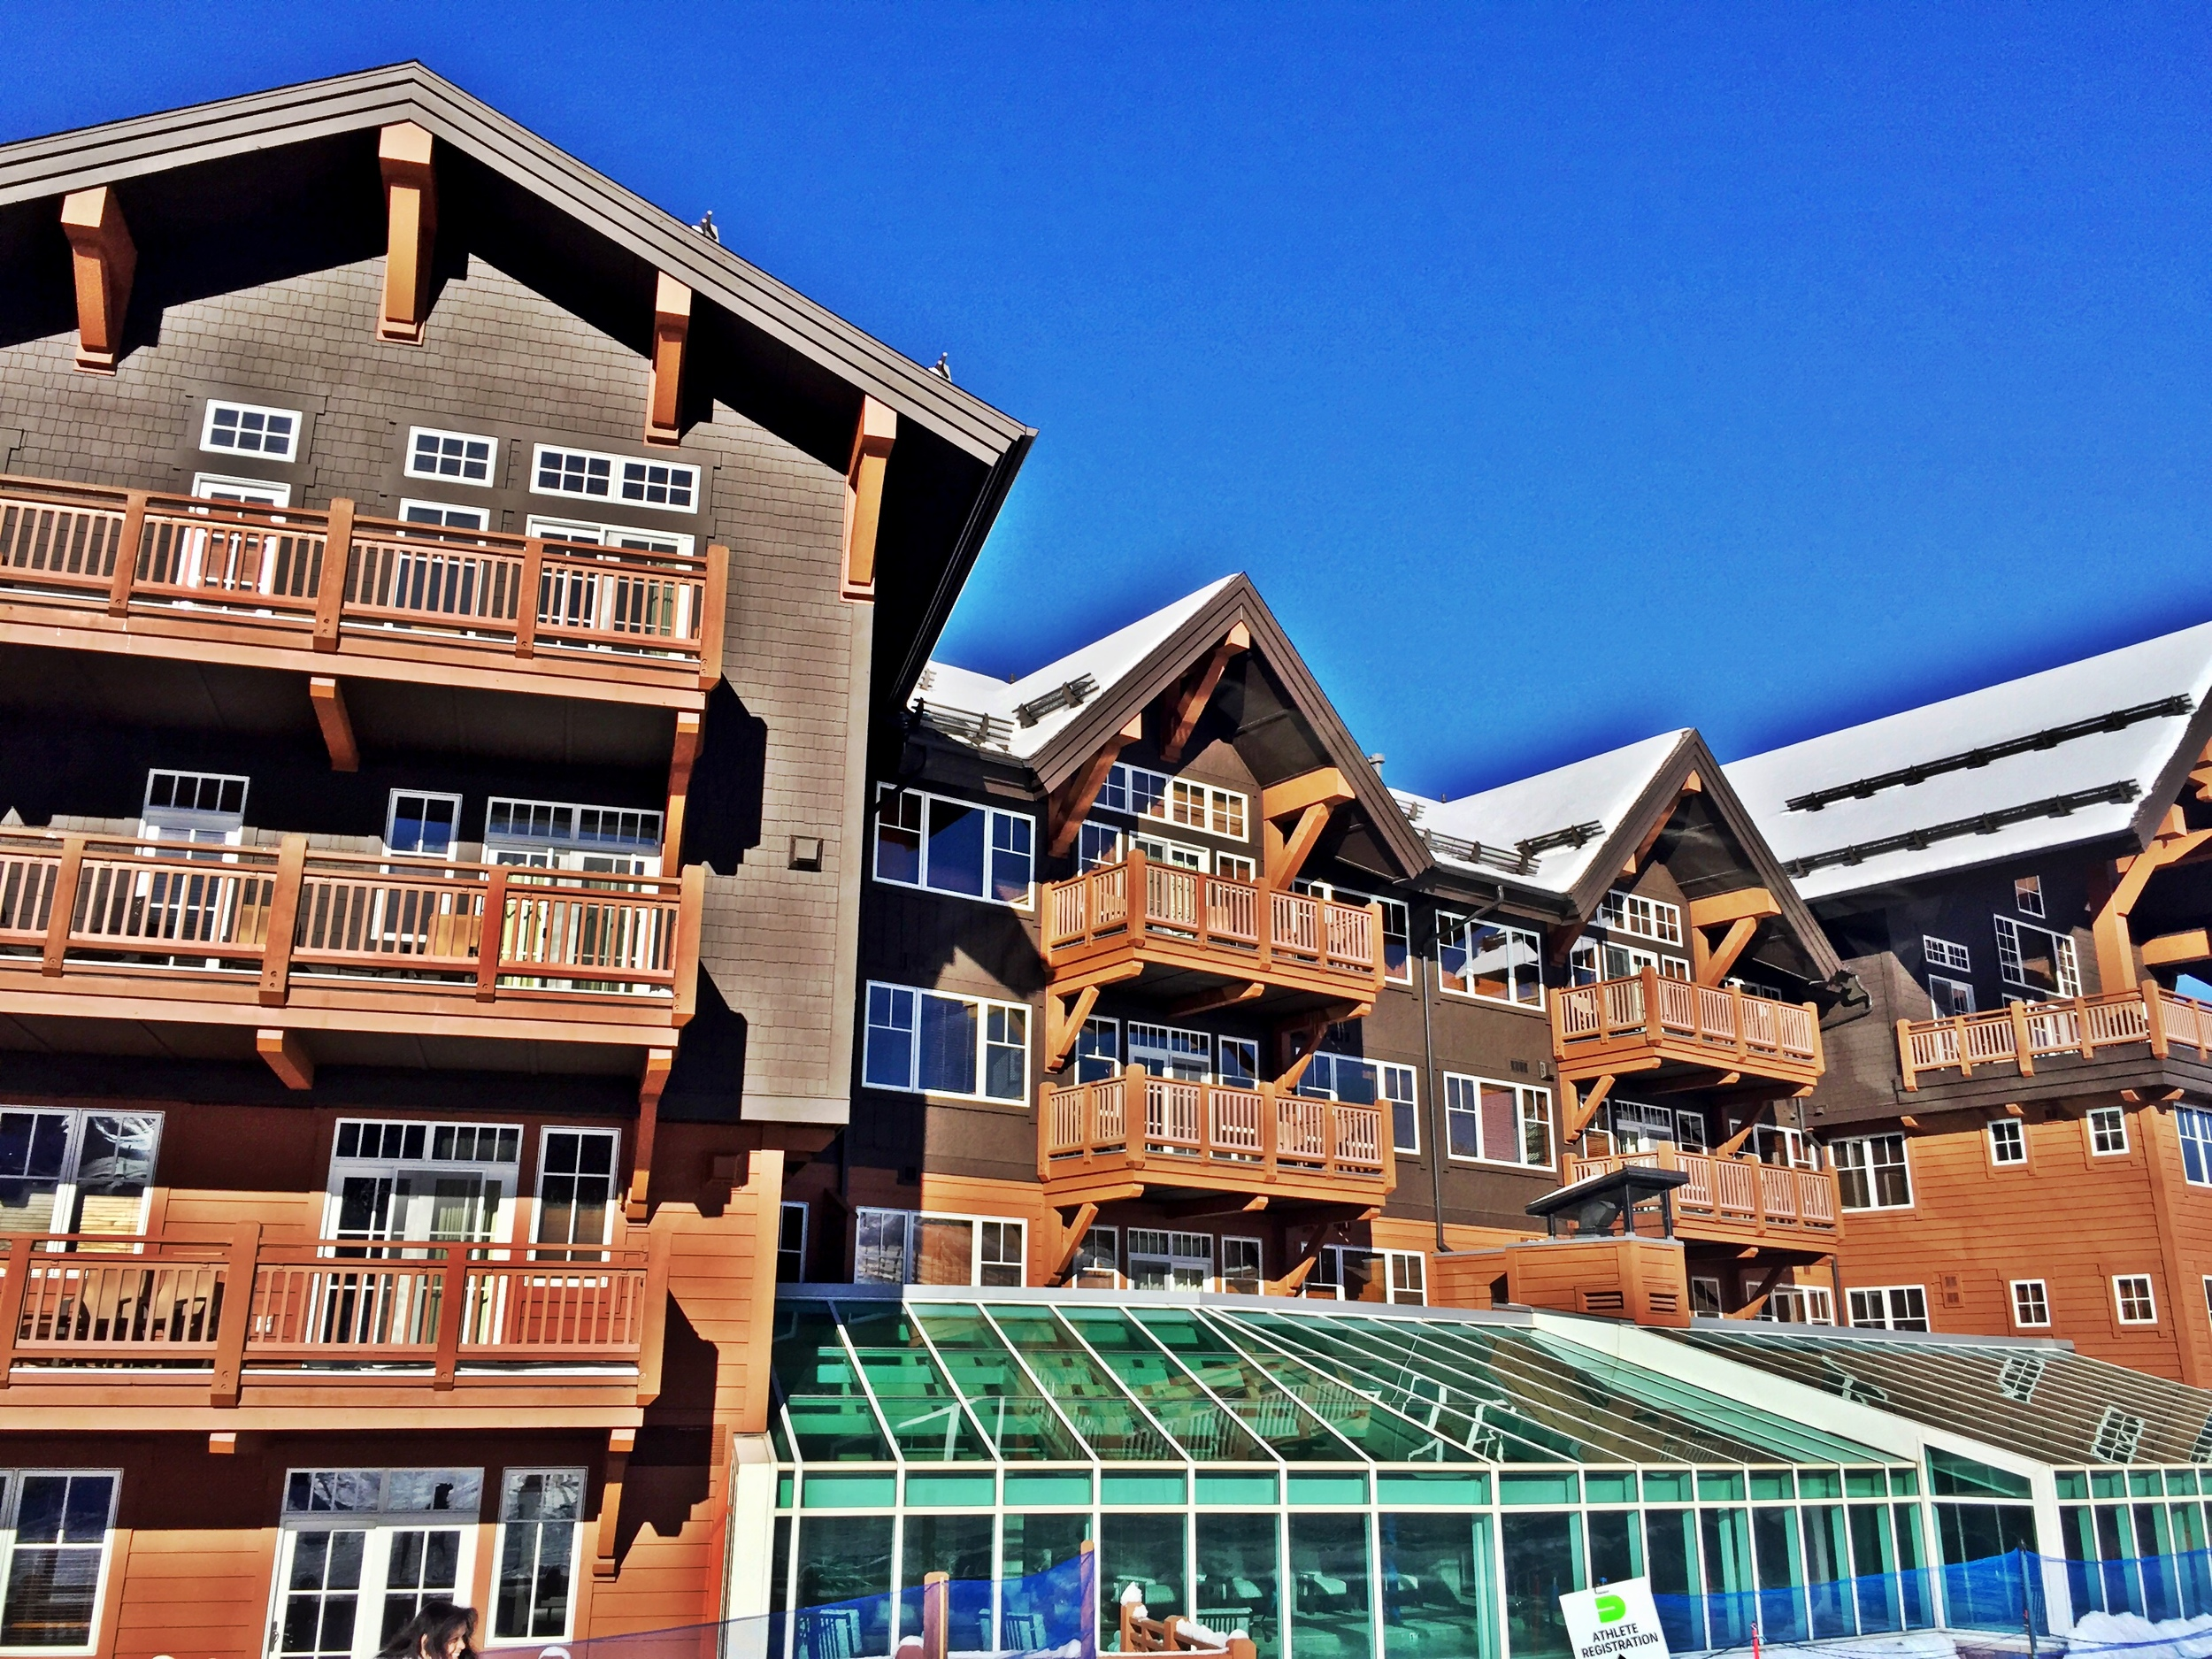 Grungy Slopes, Breckenridge Colorado, The Wedgewood Lodge 12.jpg